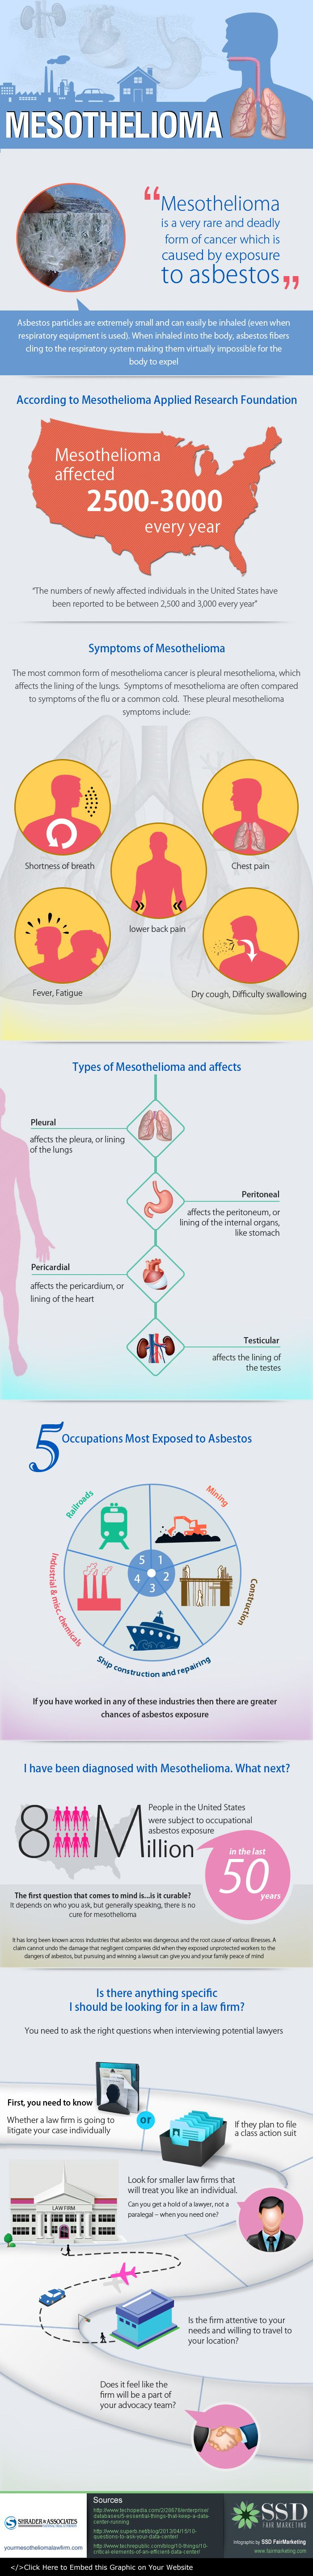 Stages of Mesothelioma #infographic